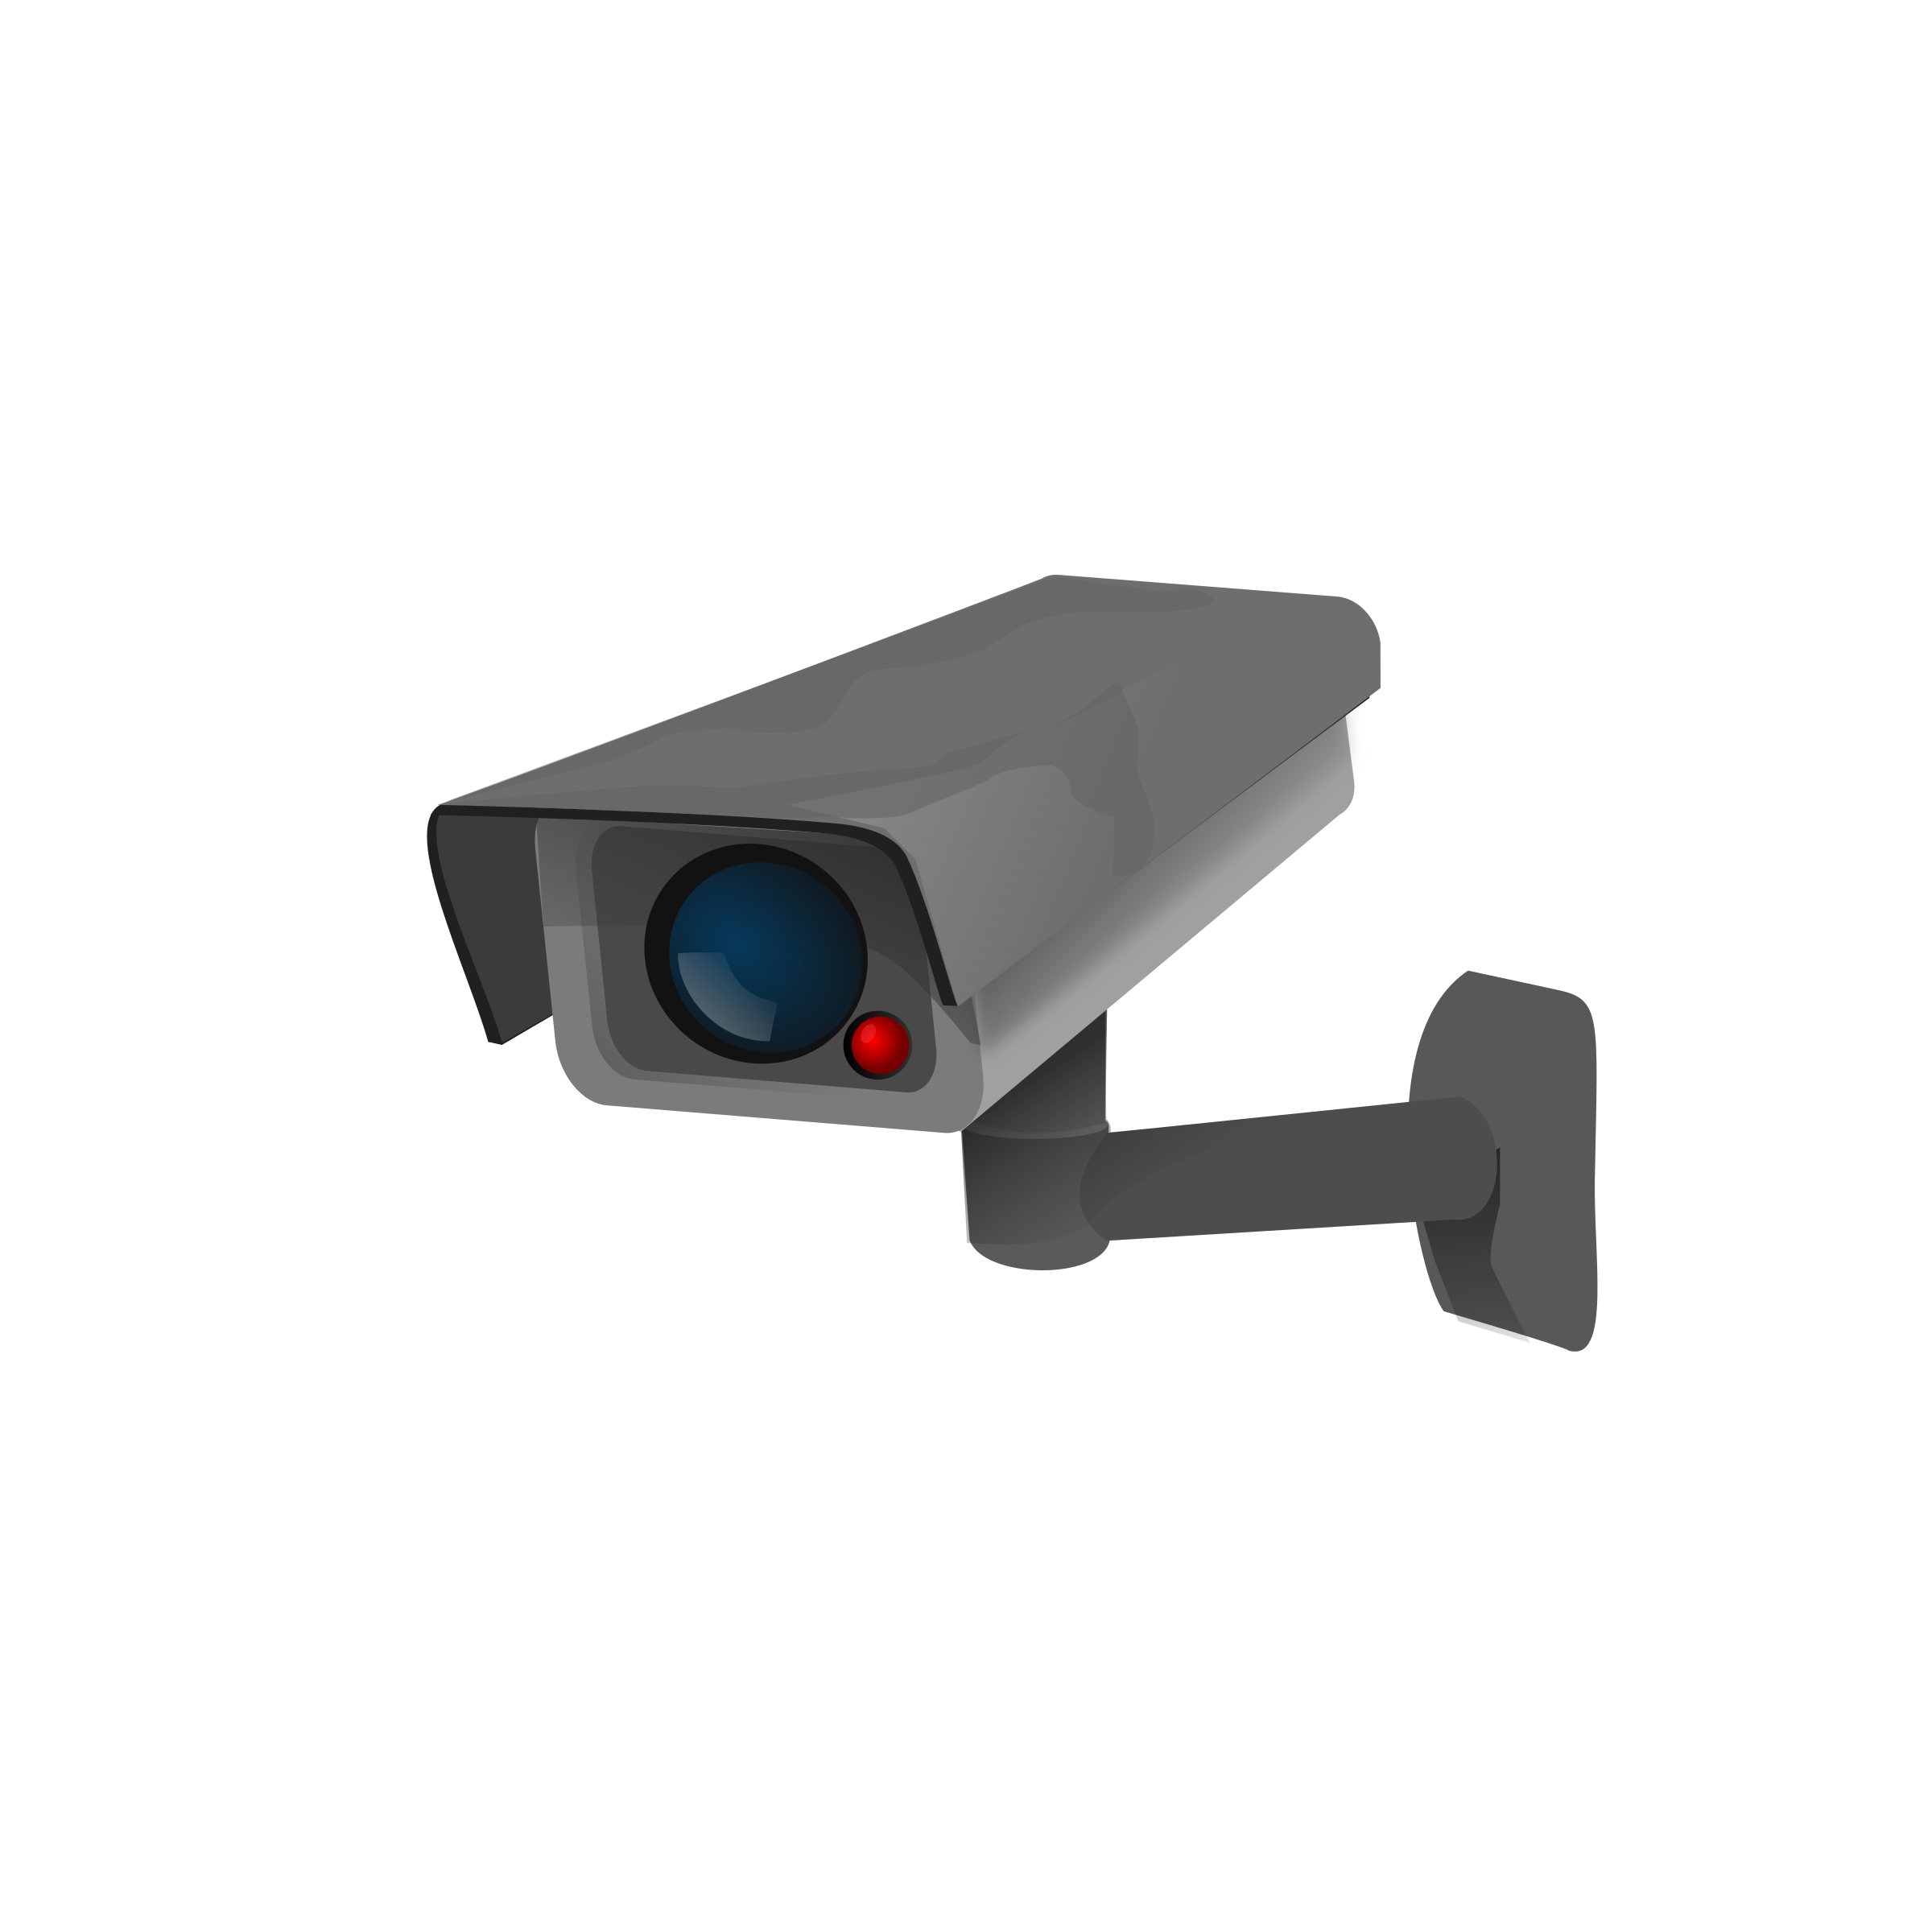 Surveillance camera by mdscntst